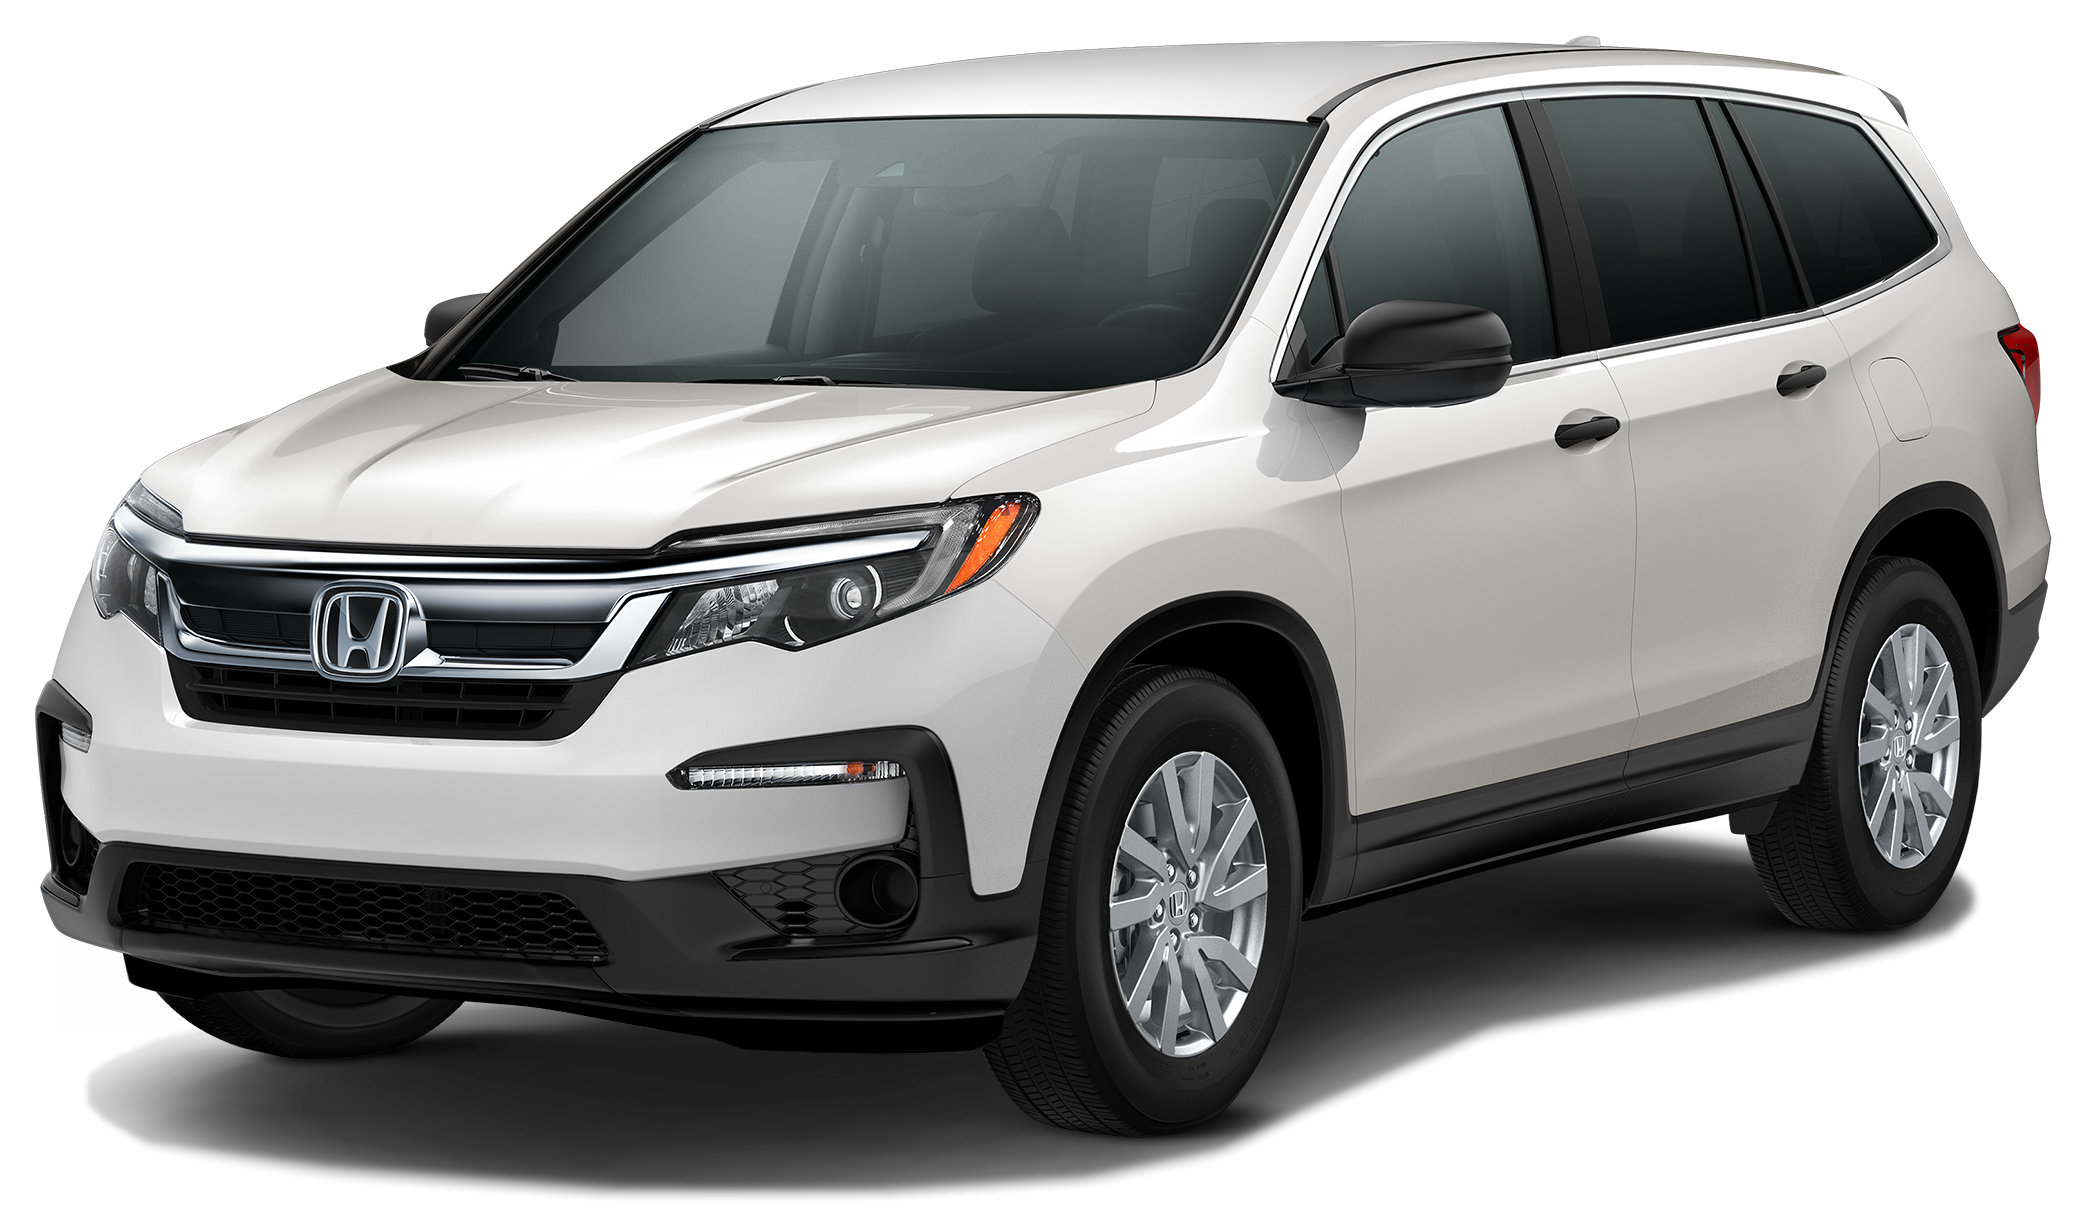 2019 Honda Pilot Incentives Specials & fers in Roseville CA